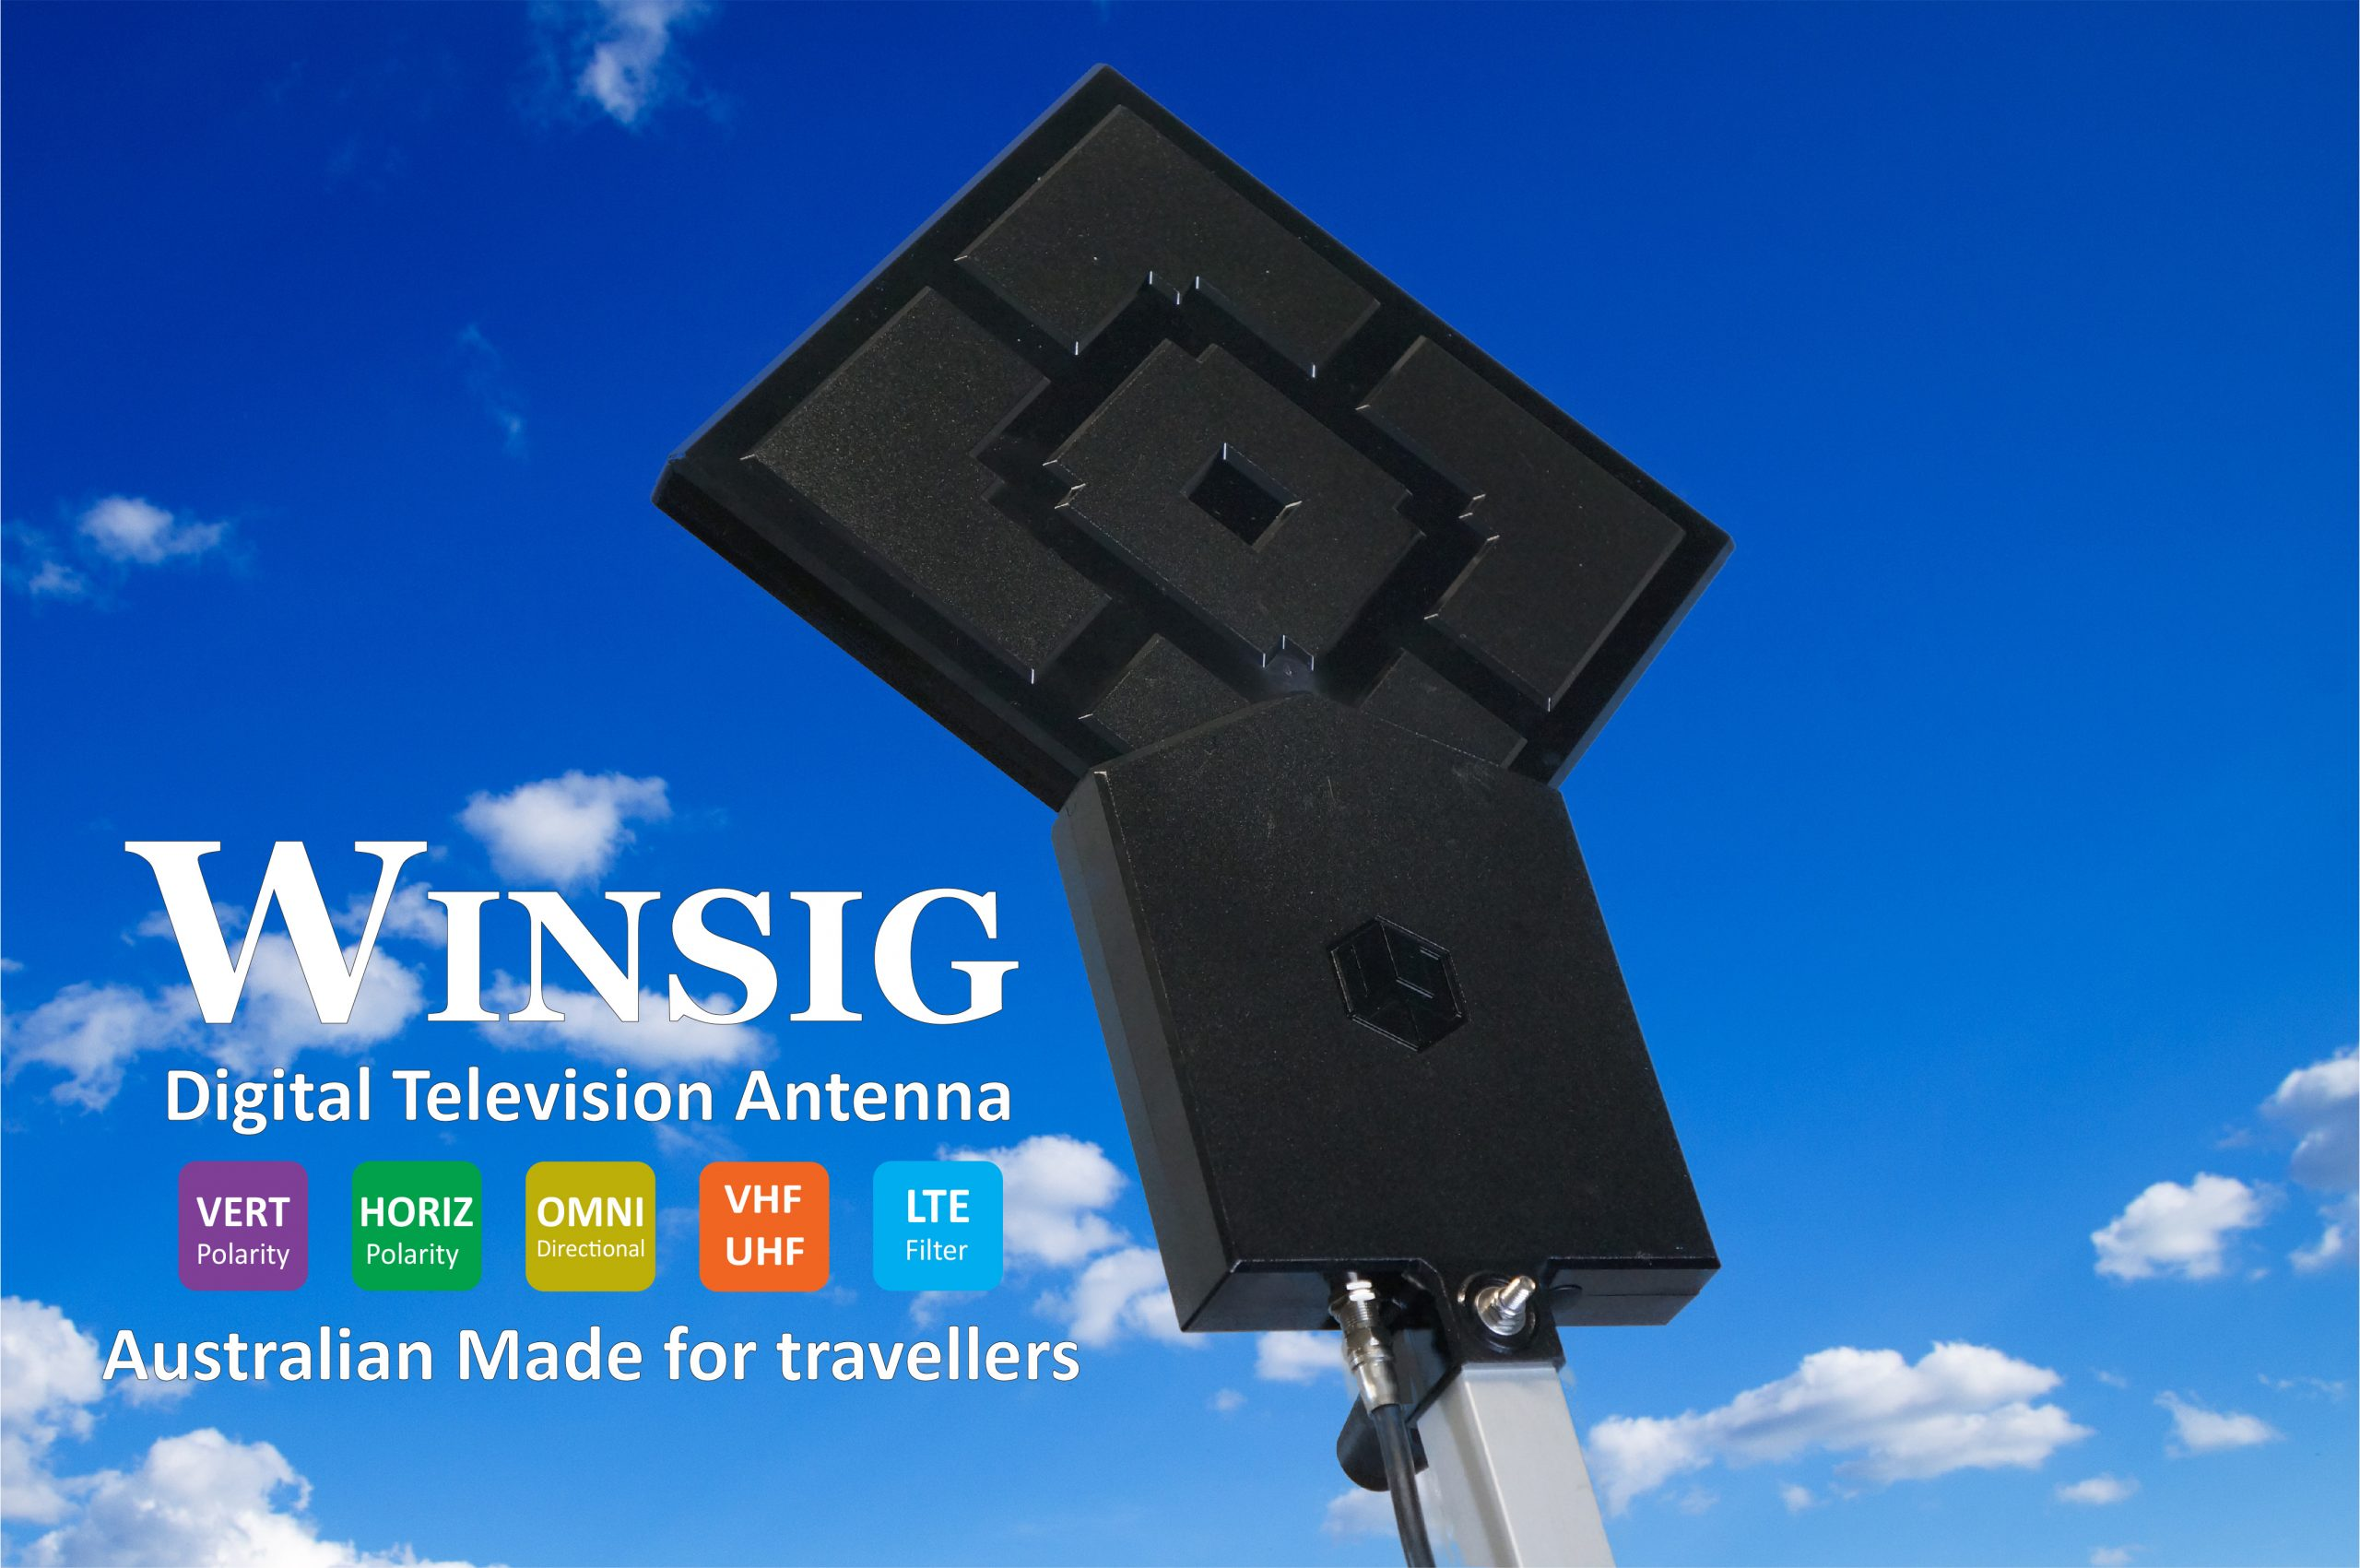 Winsig's new TV / 5G antenna promises better reception